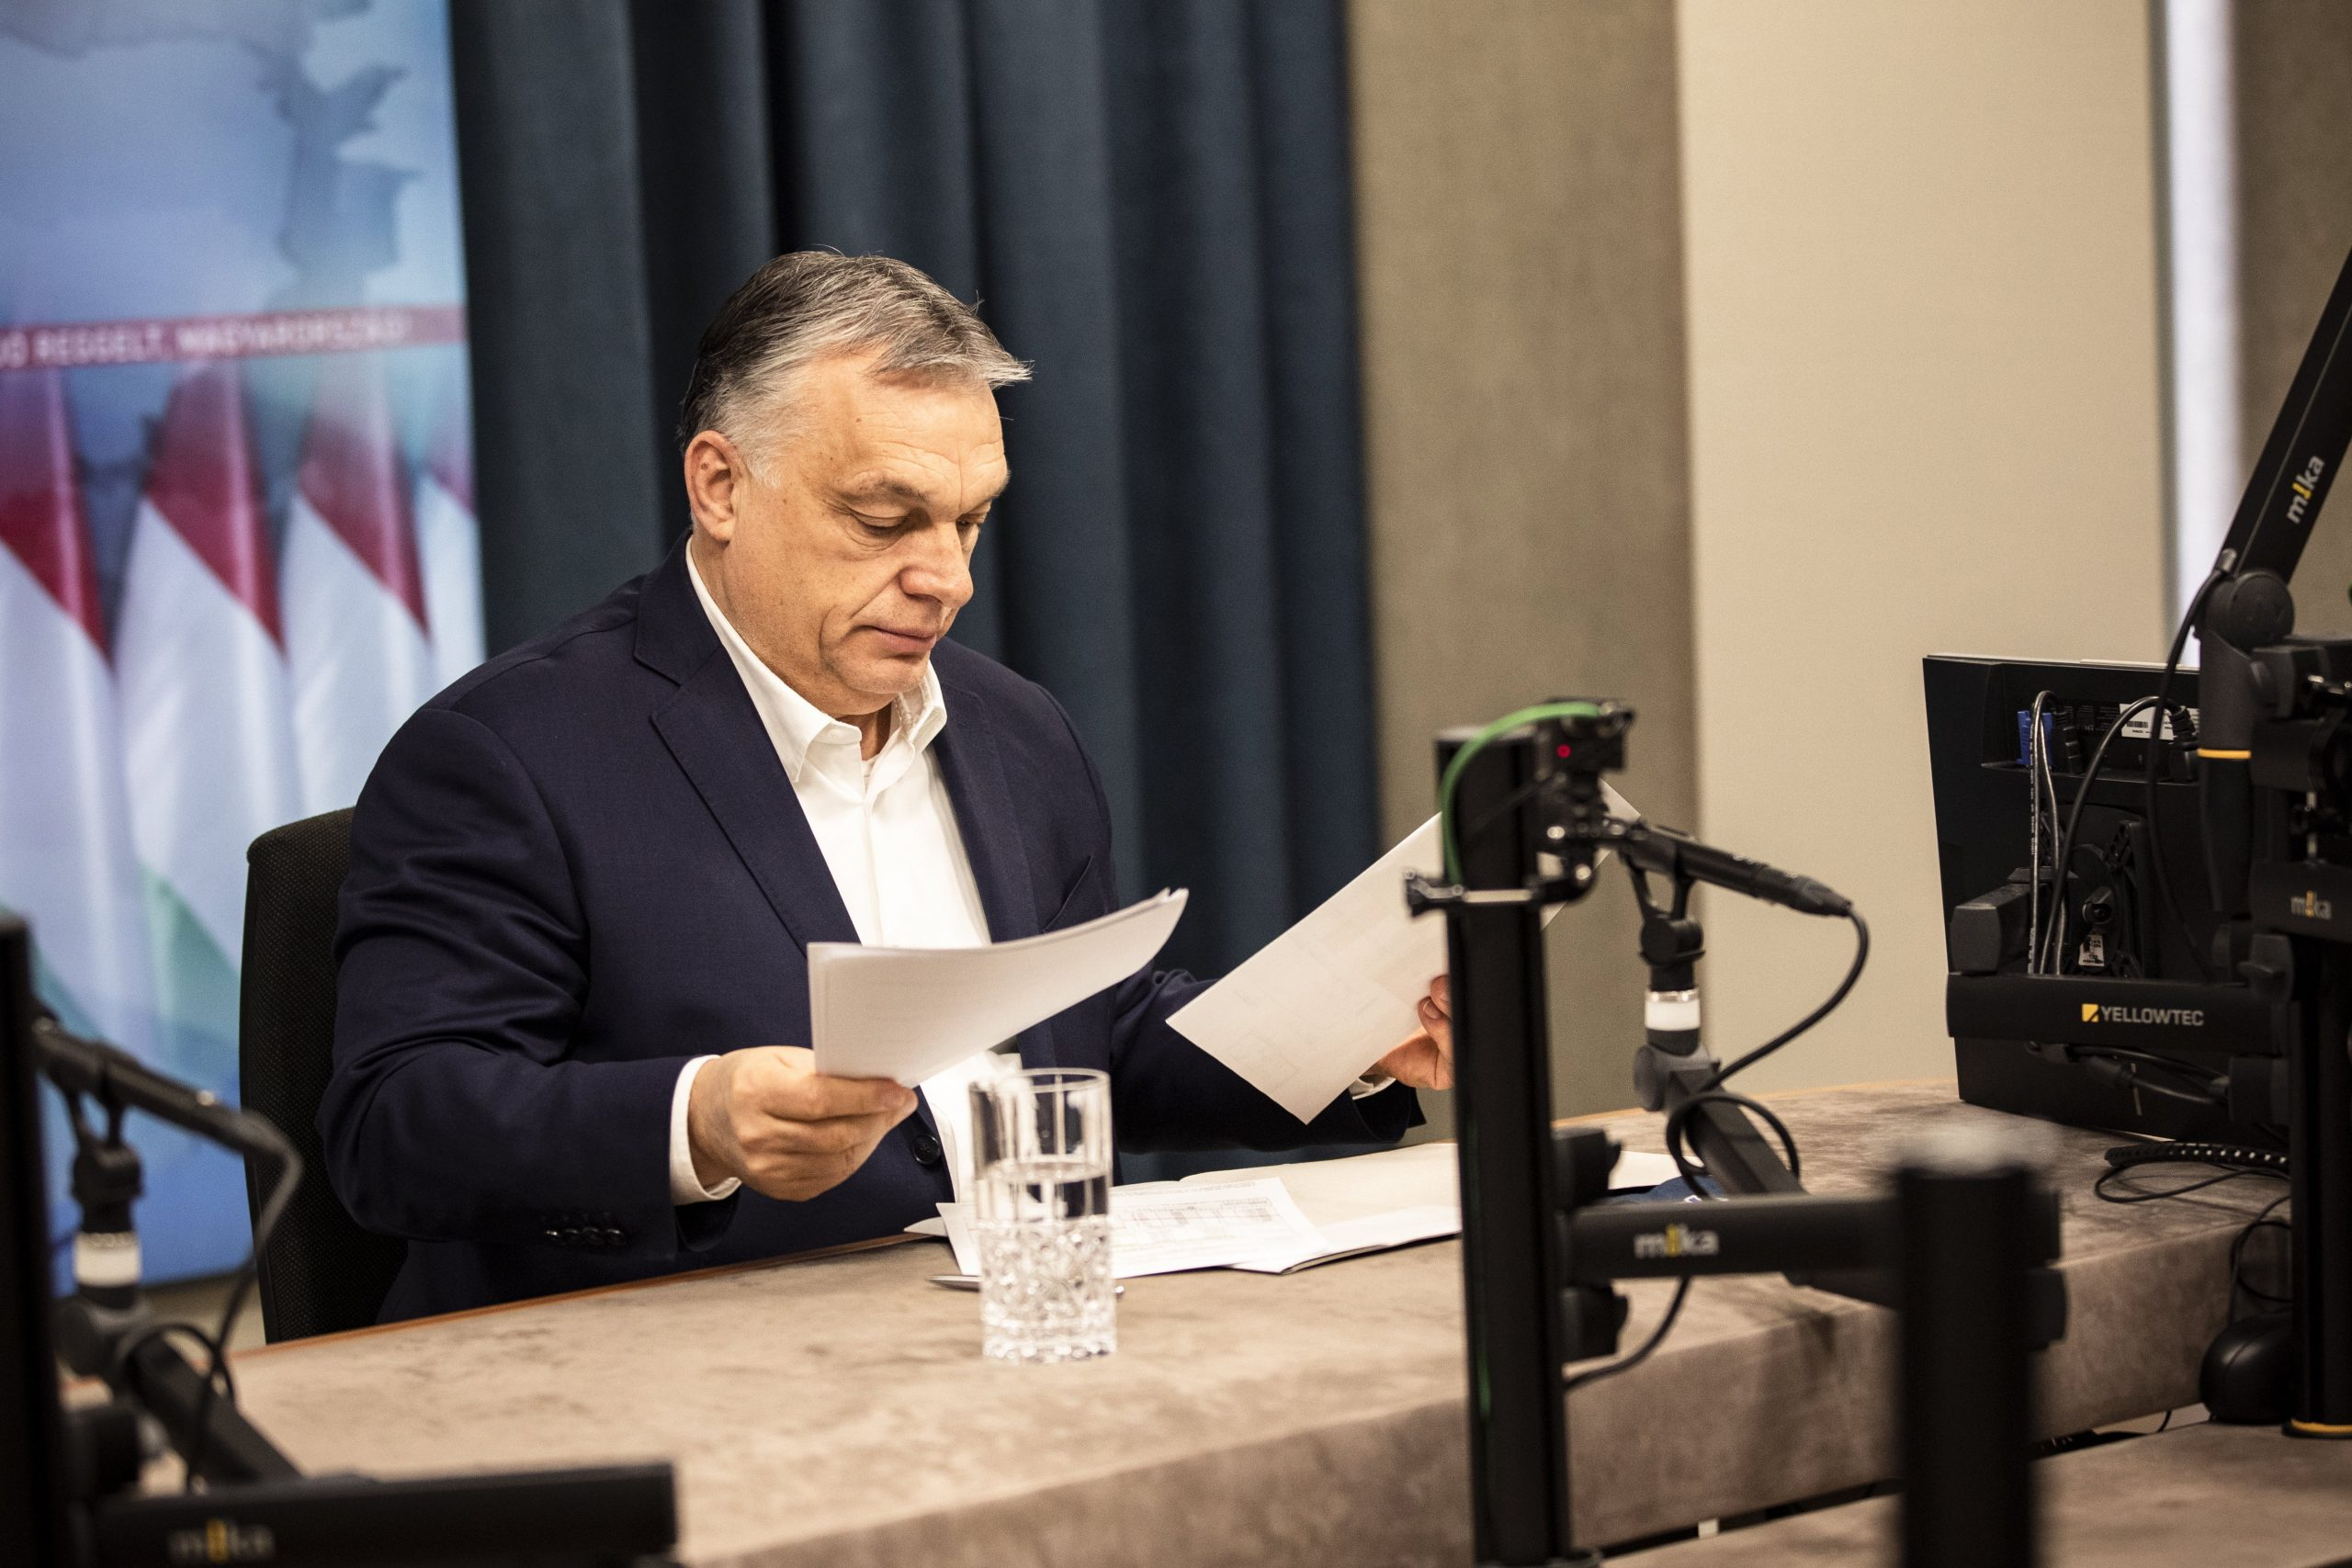 PM Orbán: Stricter Travel Rules Needed